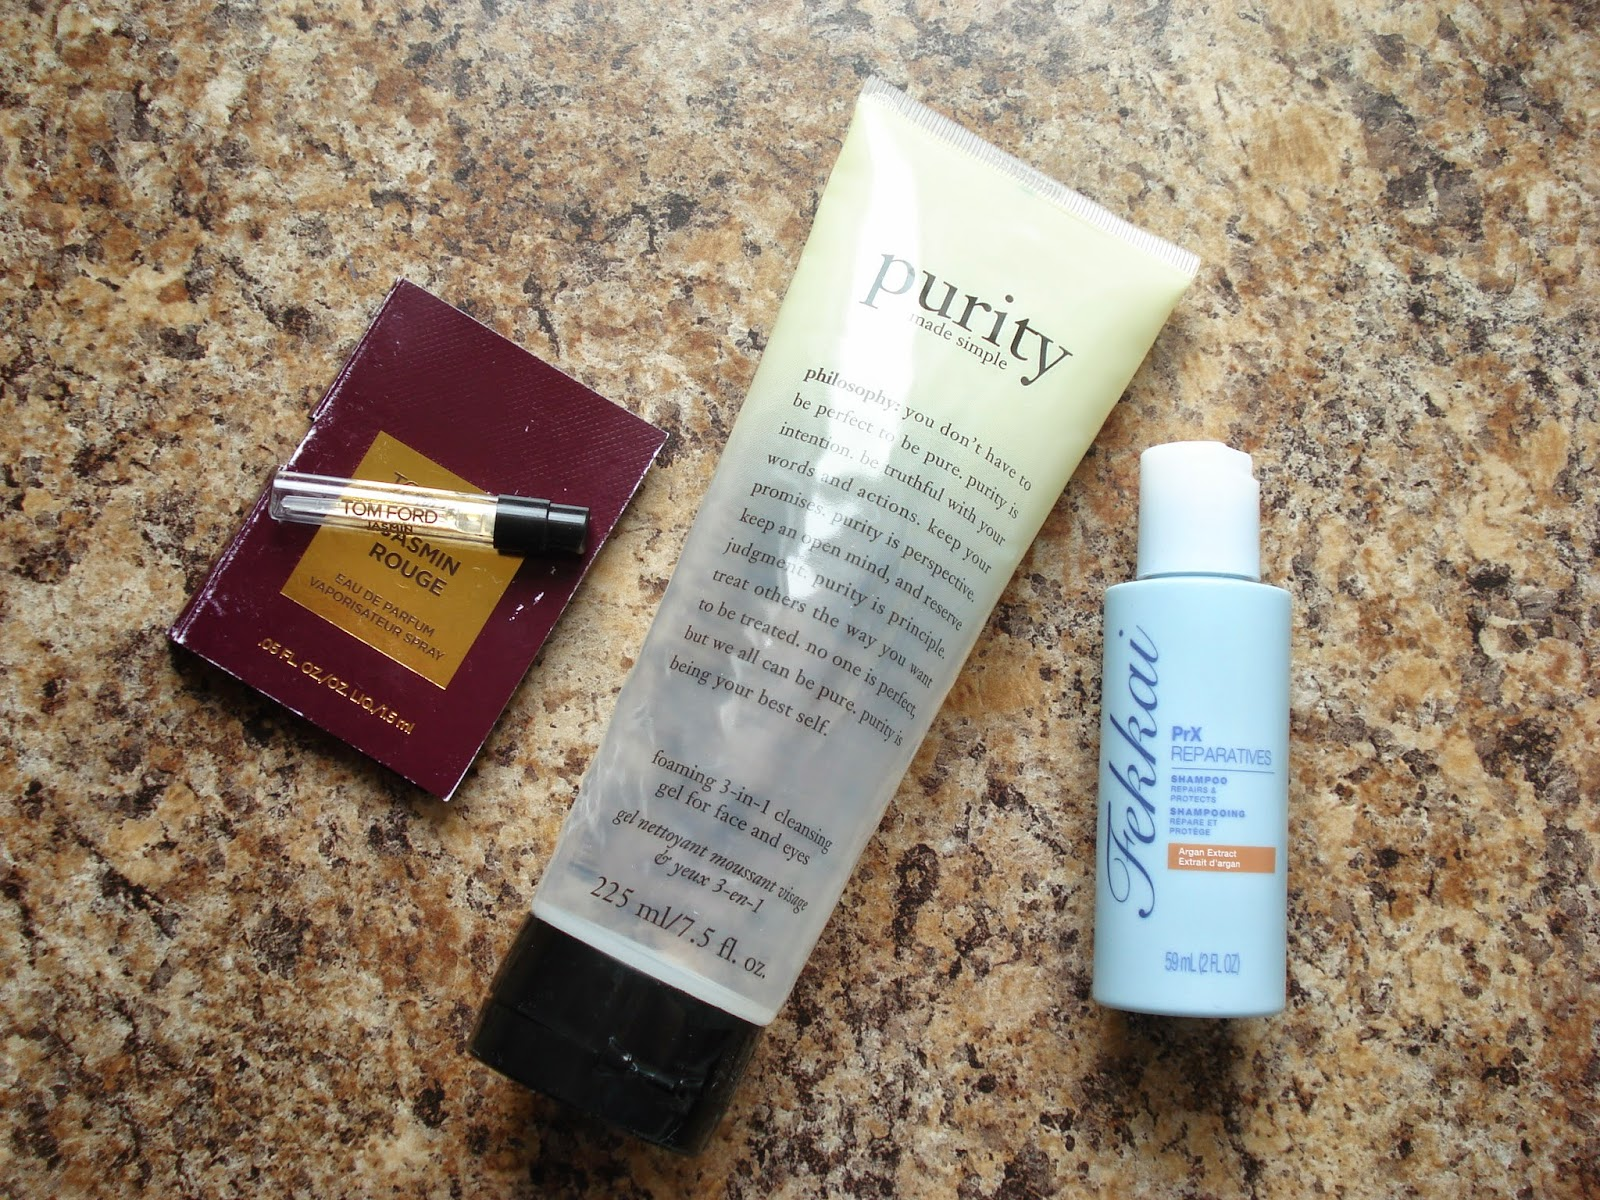 http://magnificent-road.blogspot.ca/2014/05/monthly-empties-april-2014.html